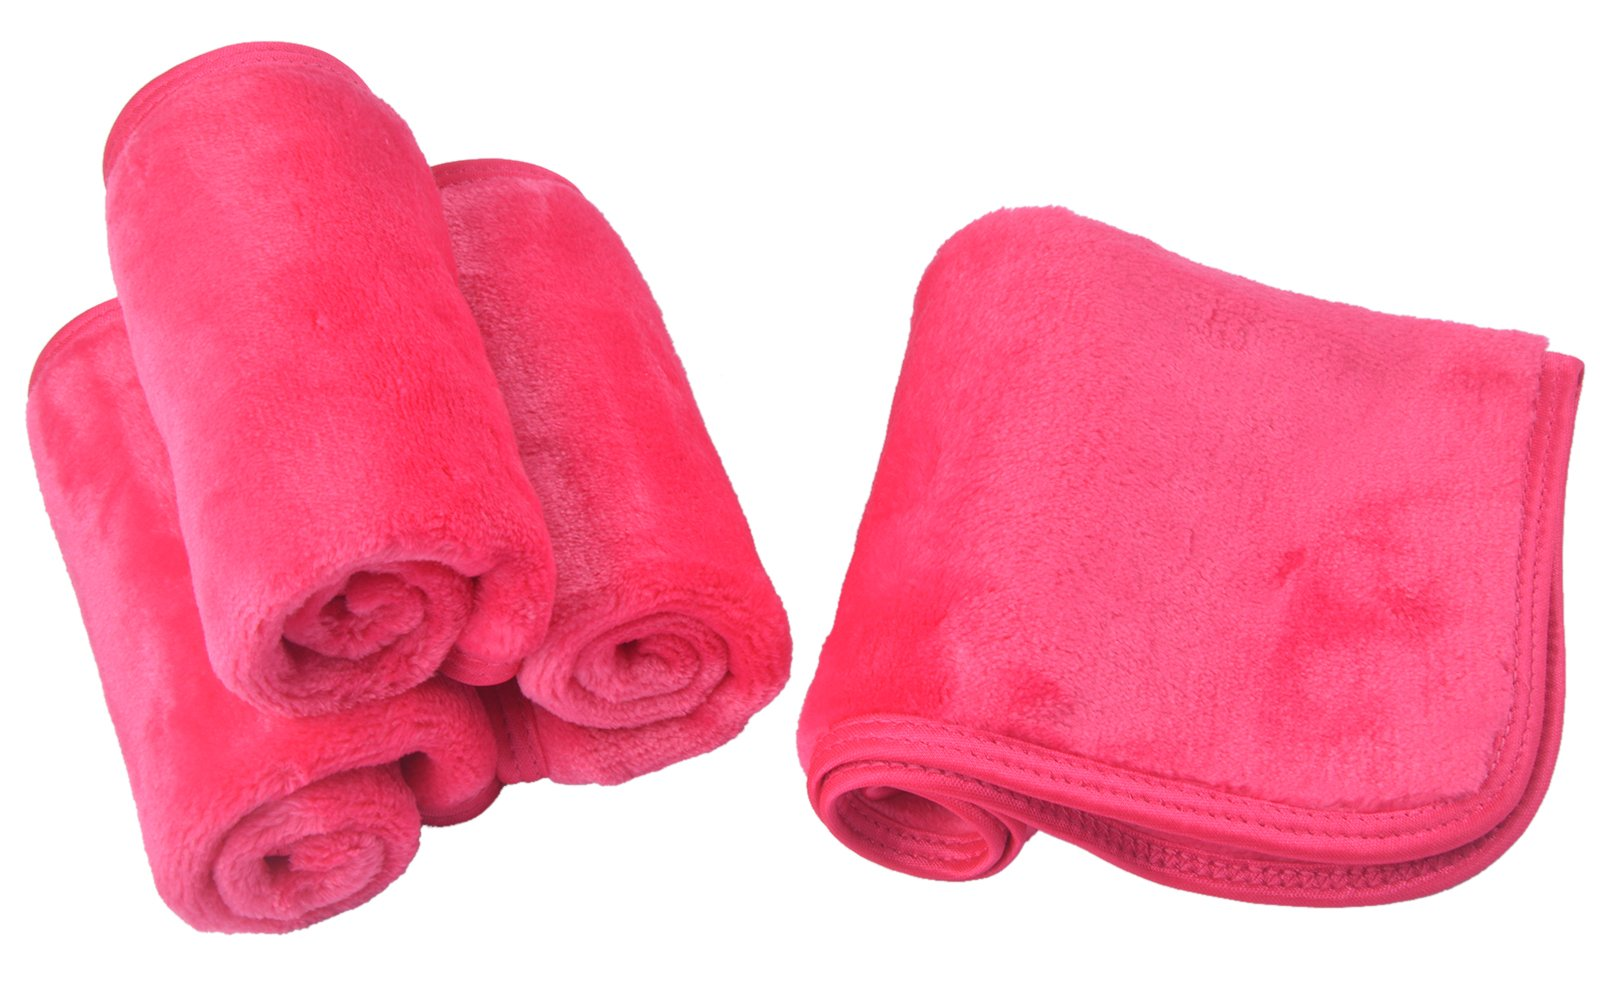 Sinland Microfiber Makeup Remover Cloth Face Cloths Facial Cleaning Towels Fast Drying Washcloth 400 gsm 9.8Inchx9.8Inch 4 Pack Dark Pink by Sinland (Image #9)